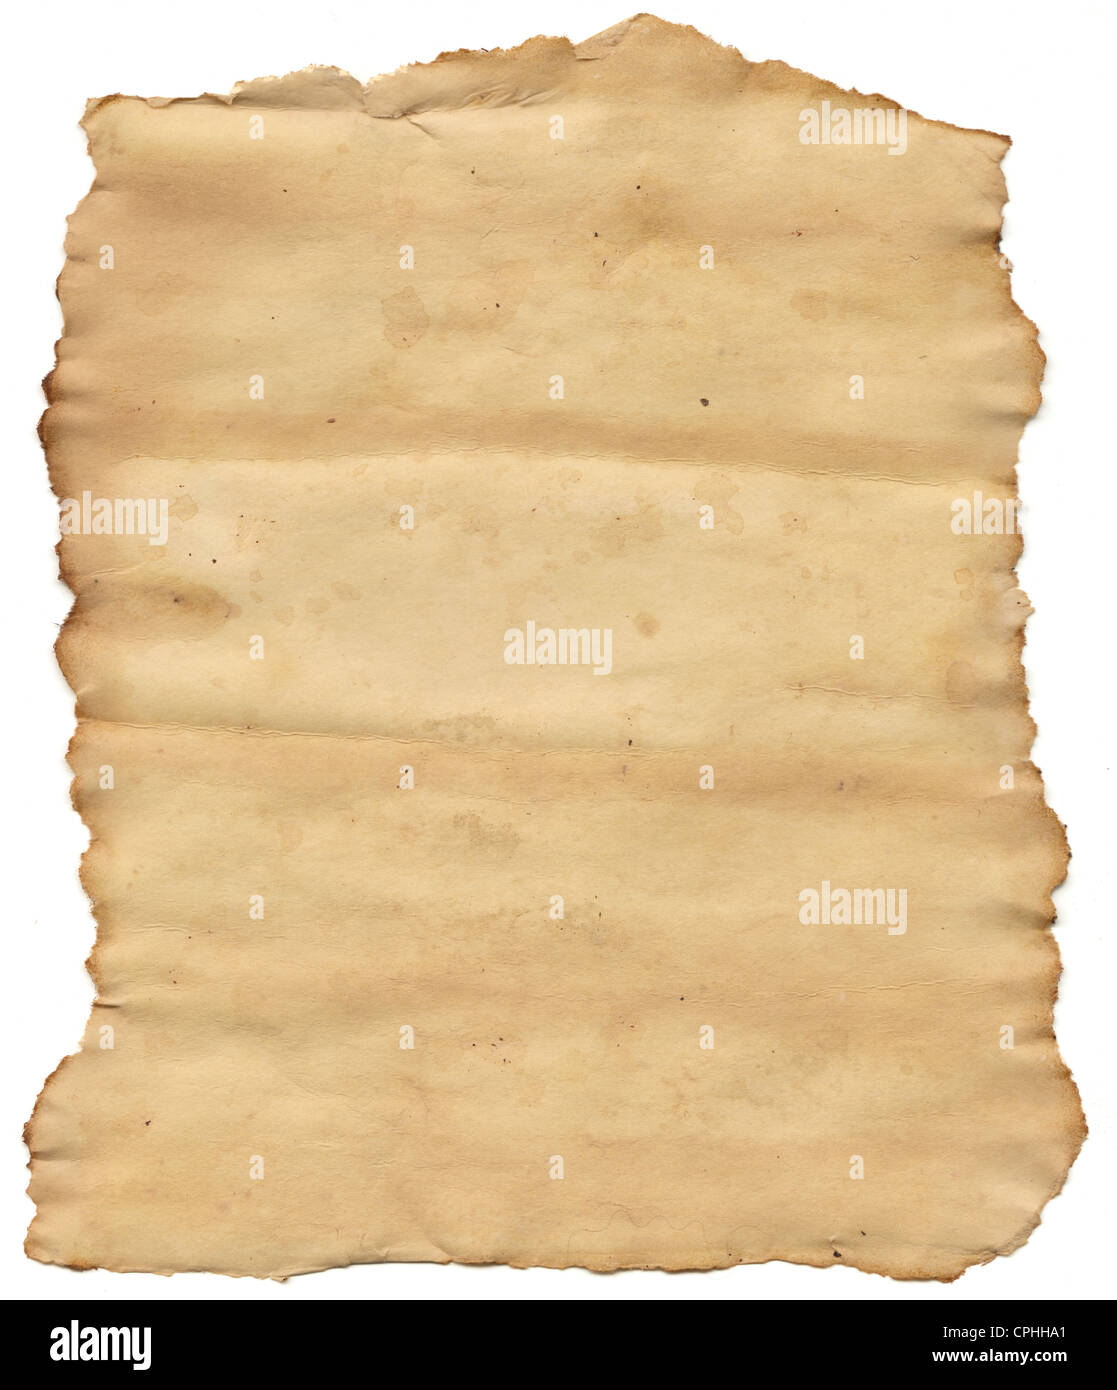 Old torn paper - Stock Image